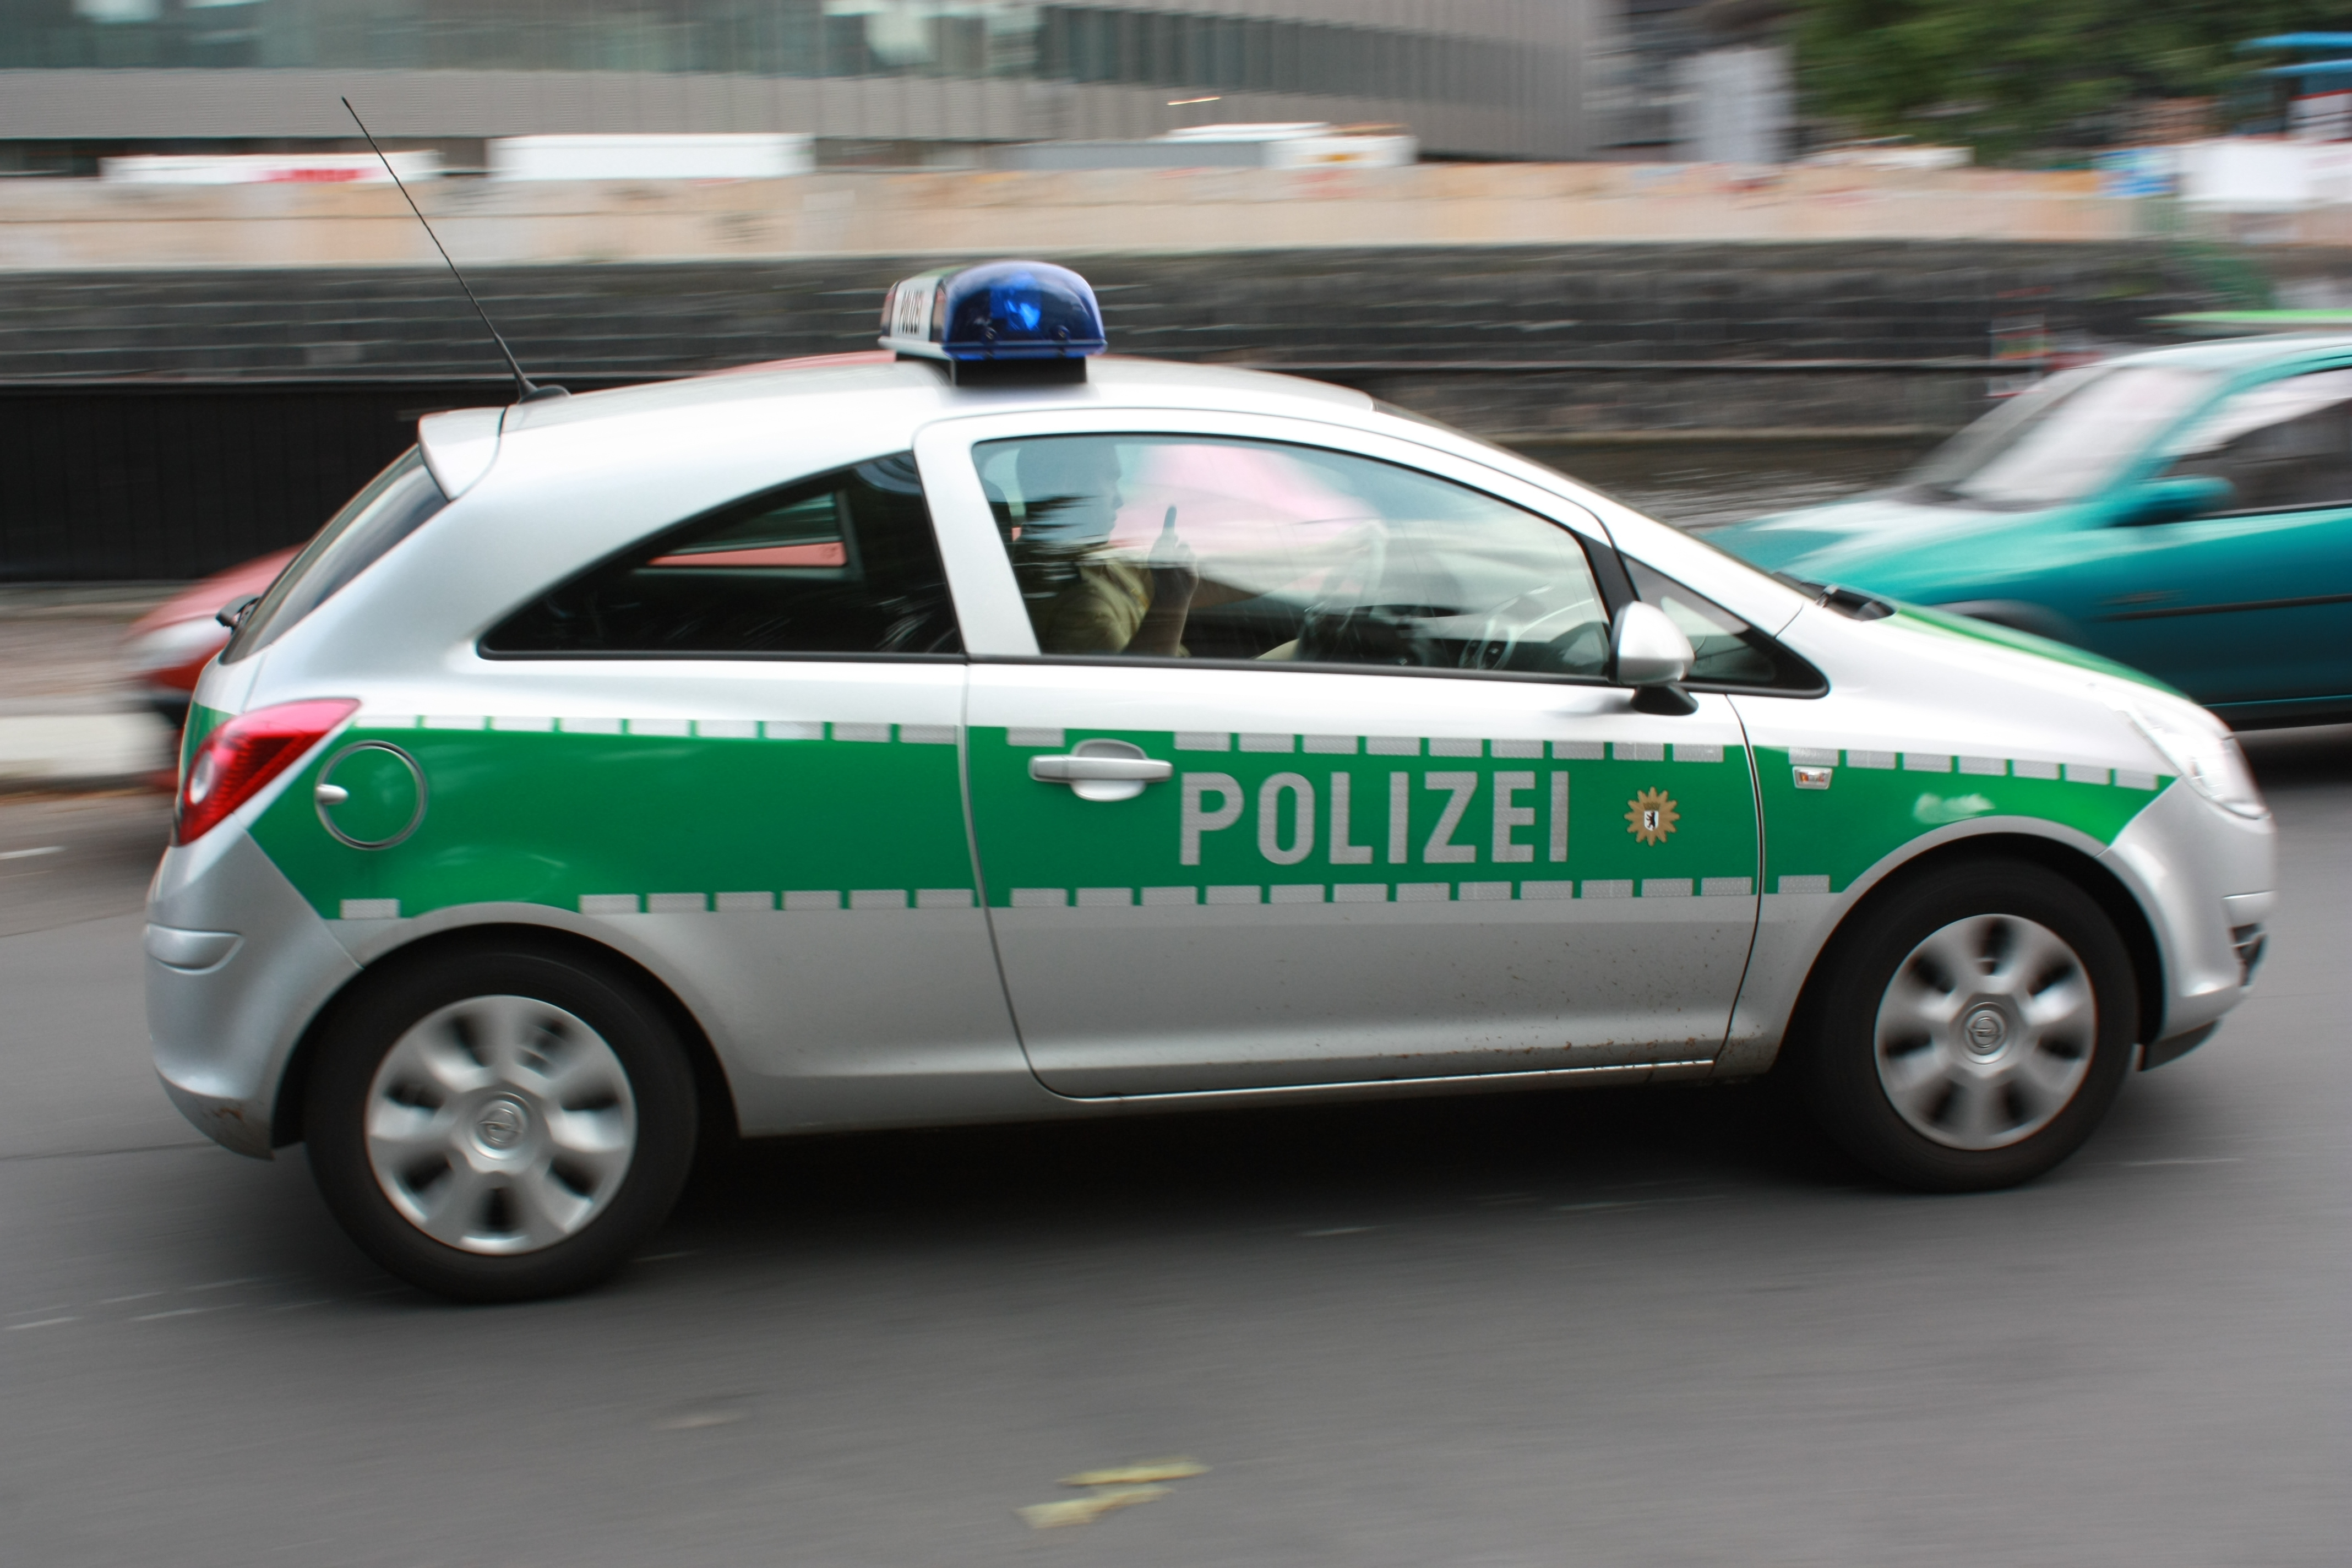 germany police World HD Wallpaper